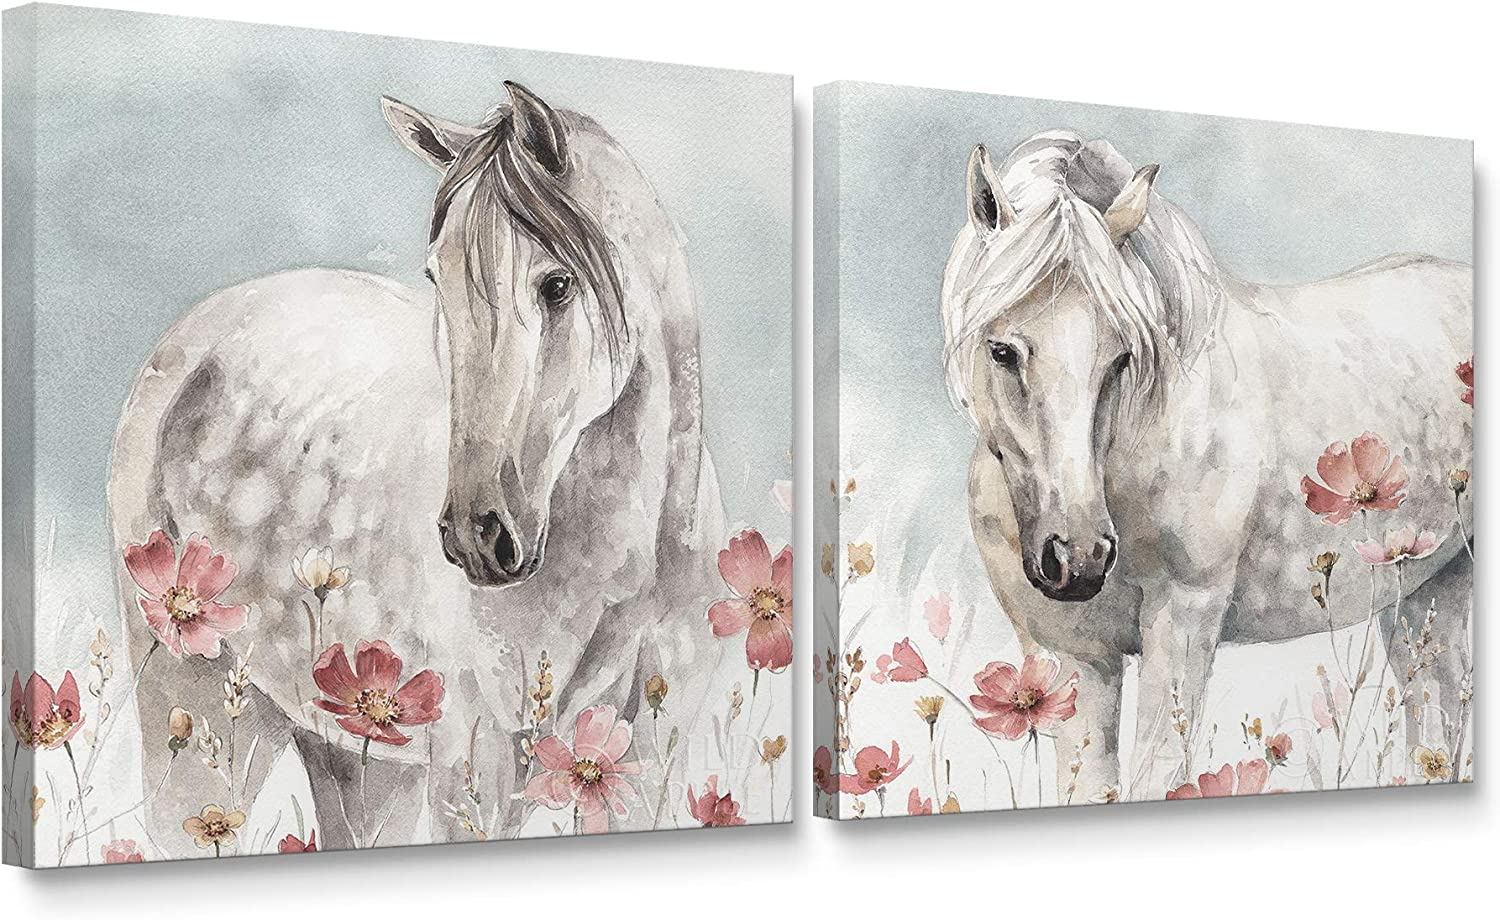 Niwo Art - Watercolor Horse and Flower, Horse Canvas Wall Art Home Decor,Stretched Ready to Hang